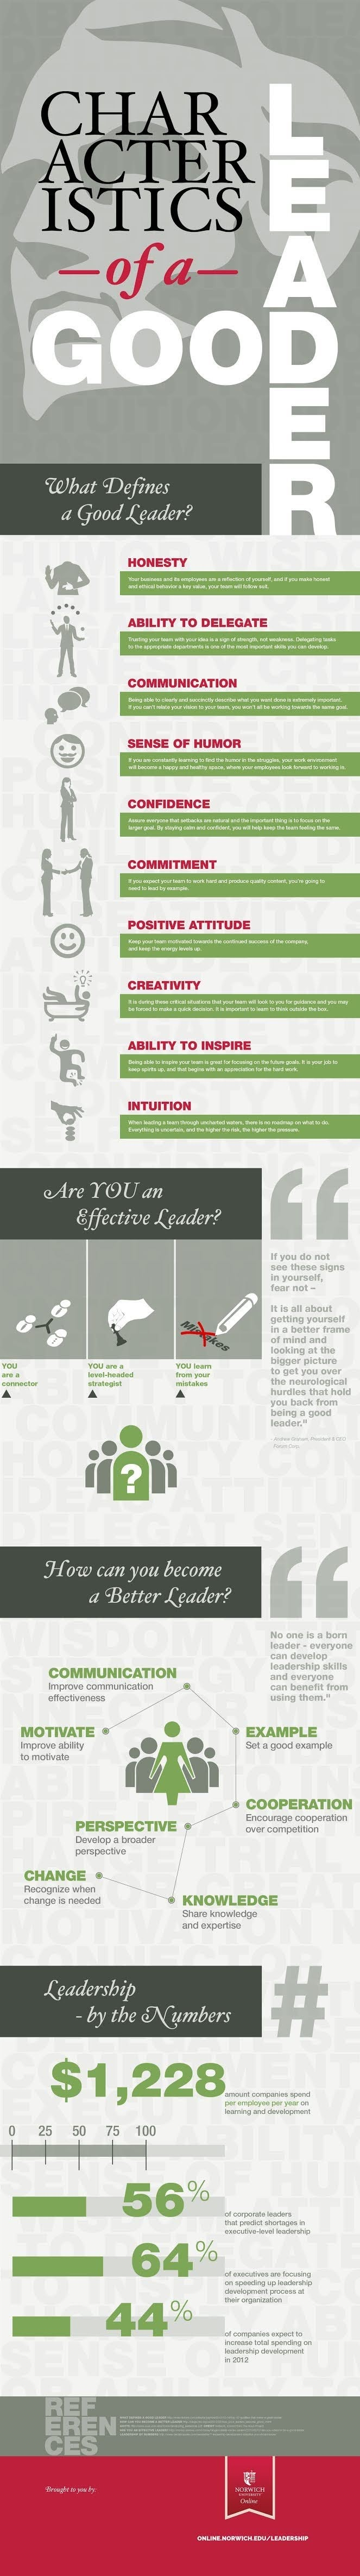 Characteristics of a Good Leade #Infographic